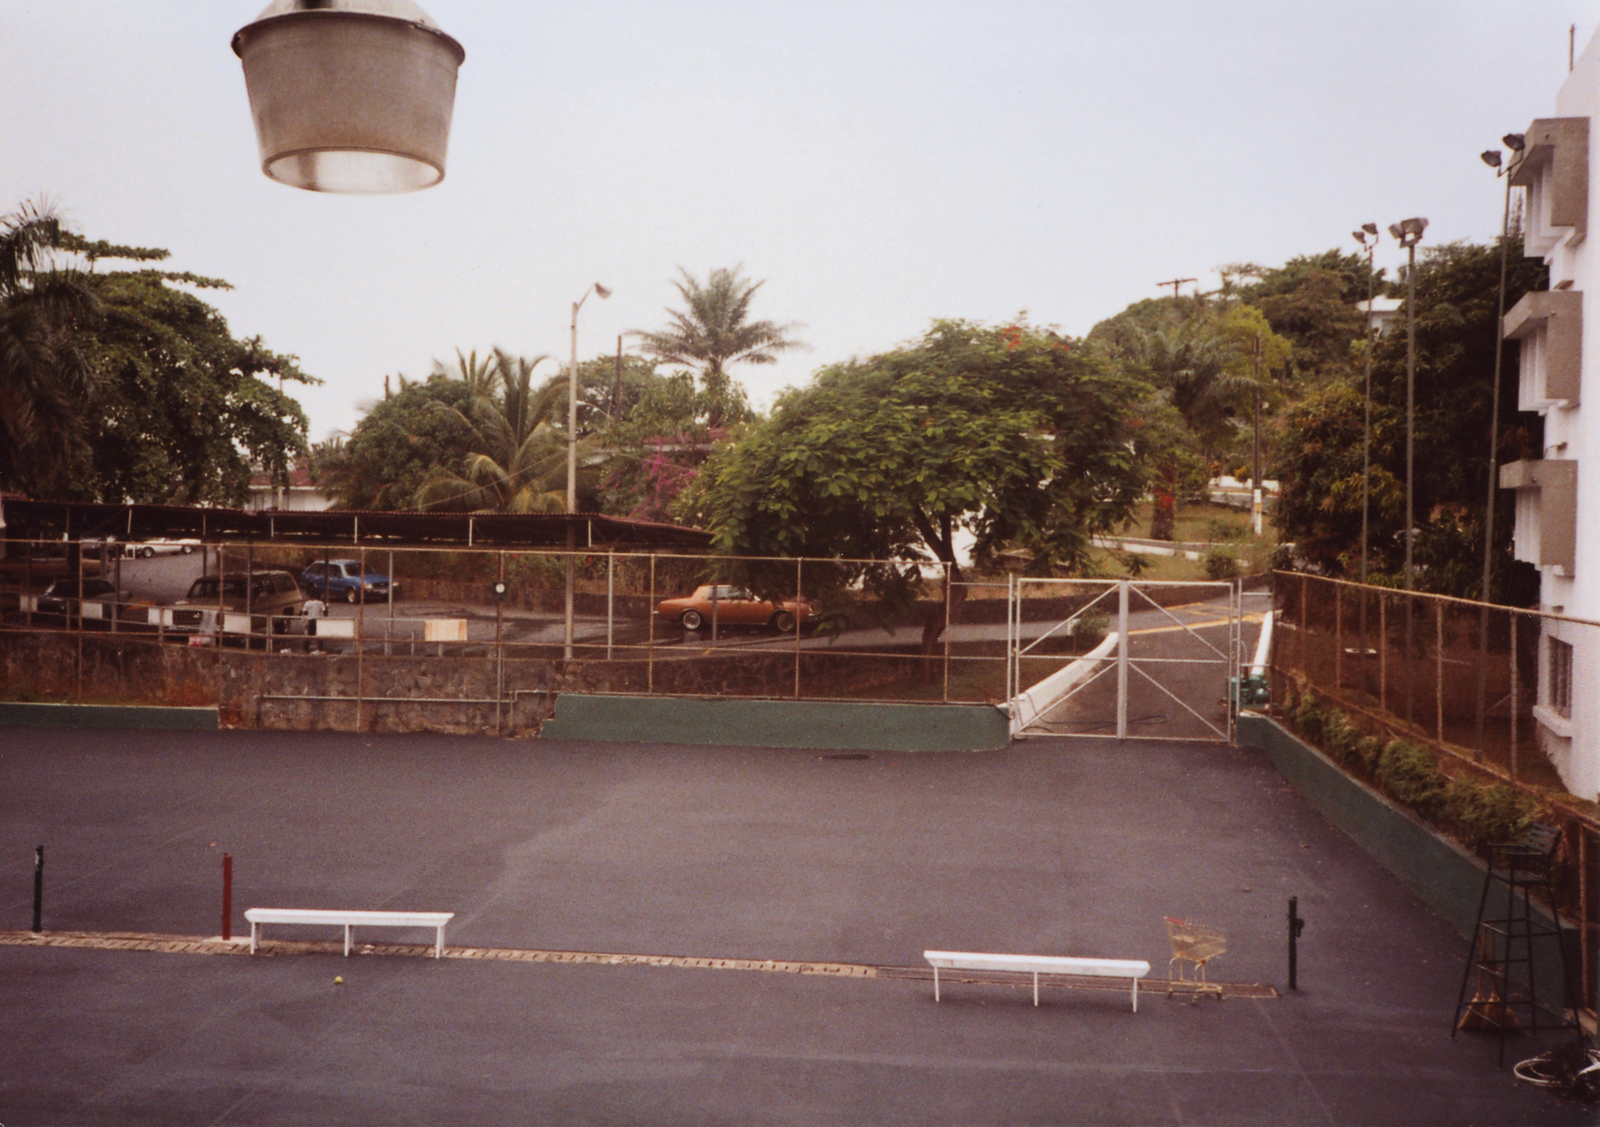 Monrovia - Communications Tower/Antenna/Roof - 1983